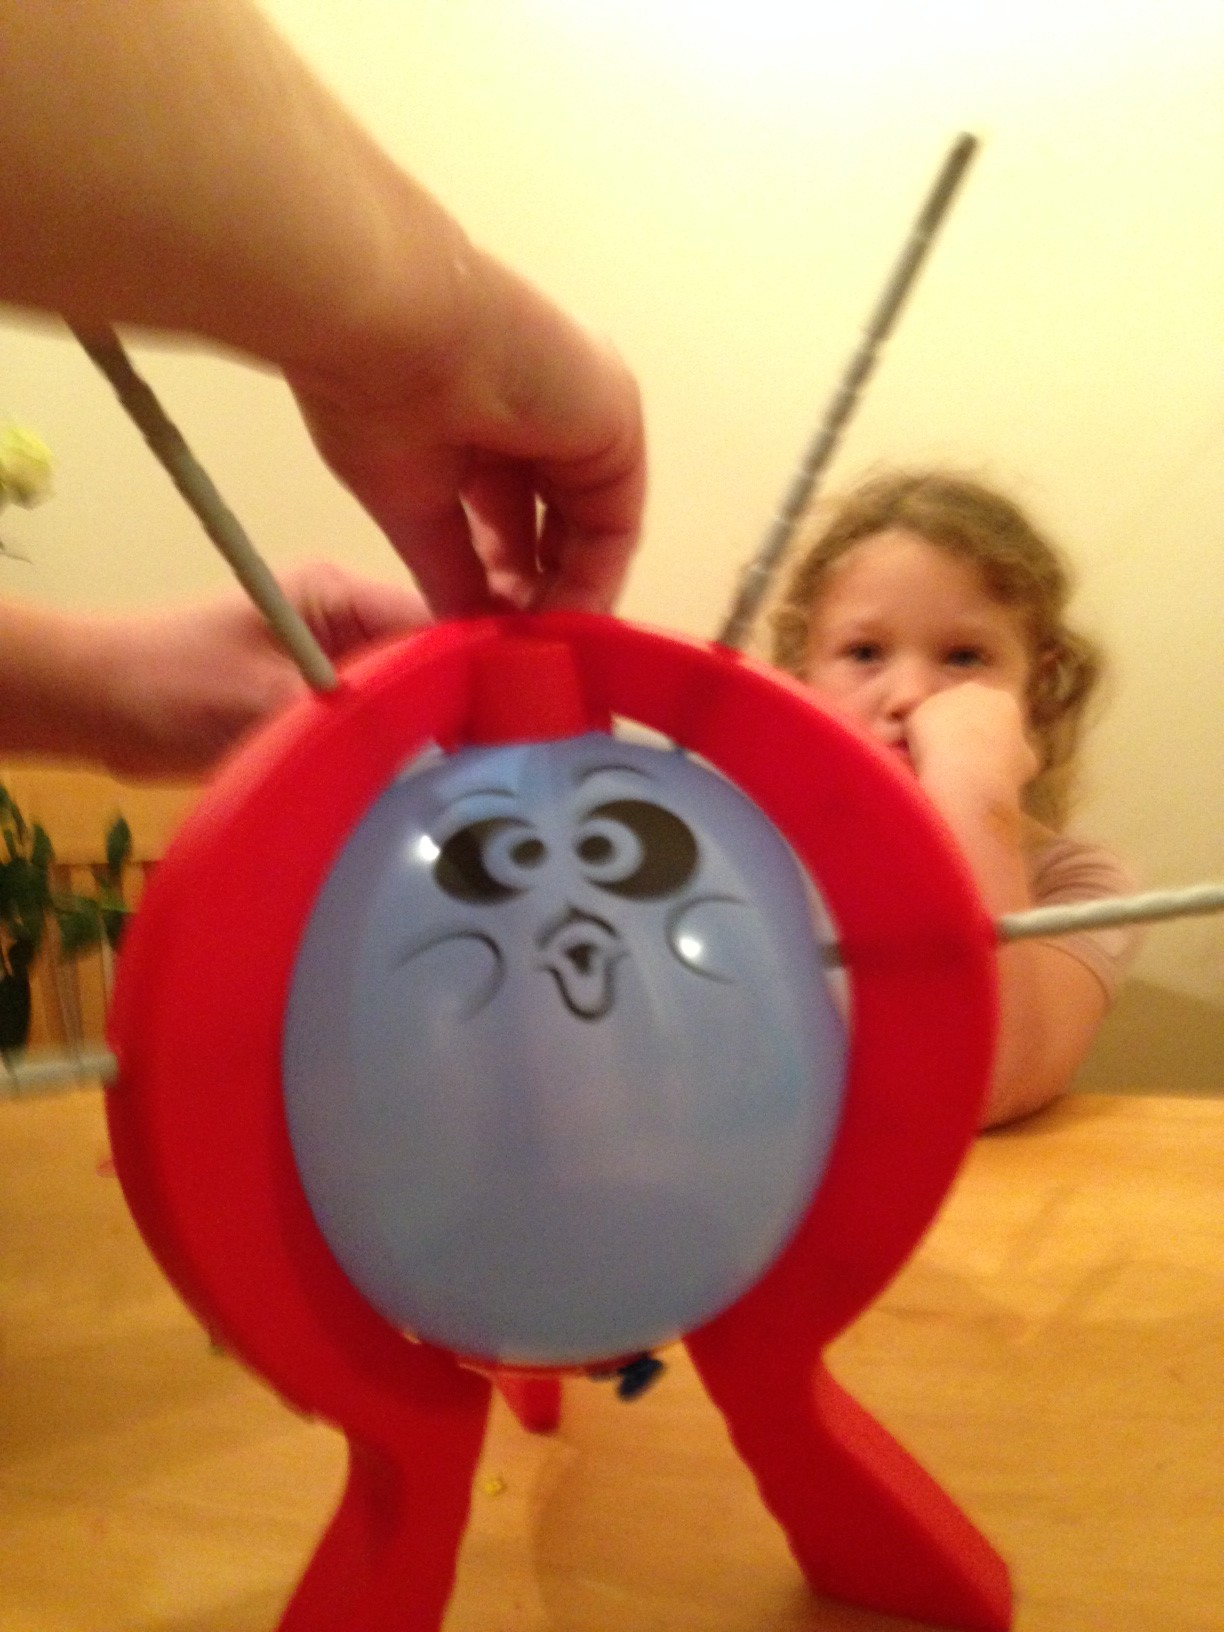 Boom Boom Balloon Review